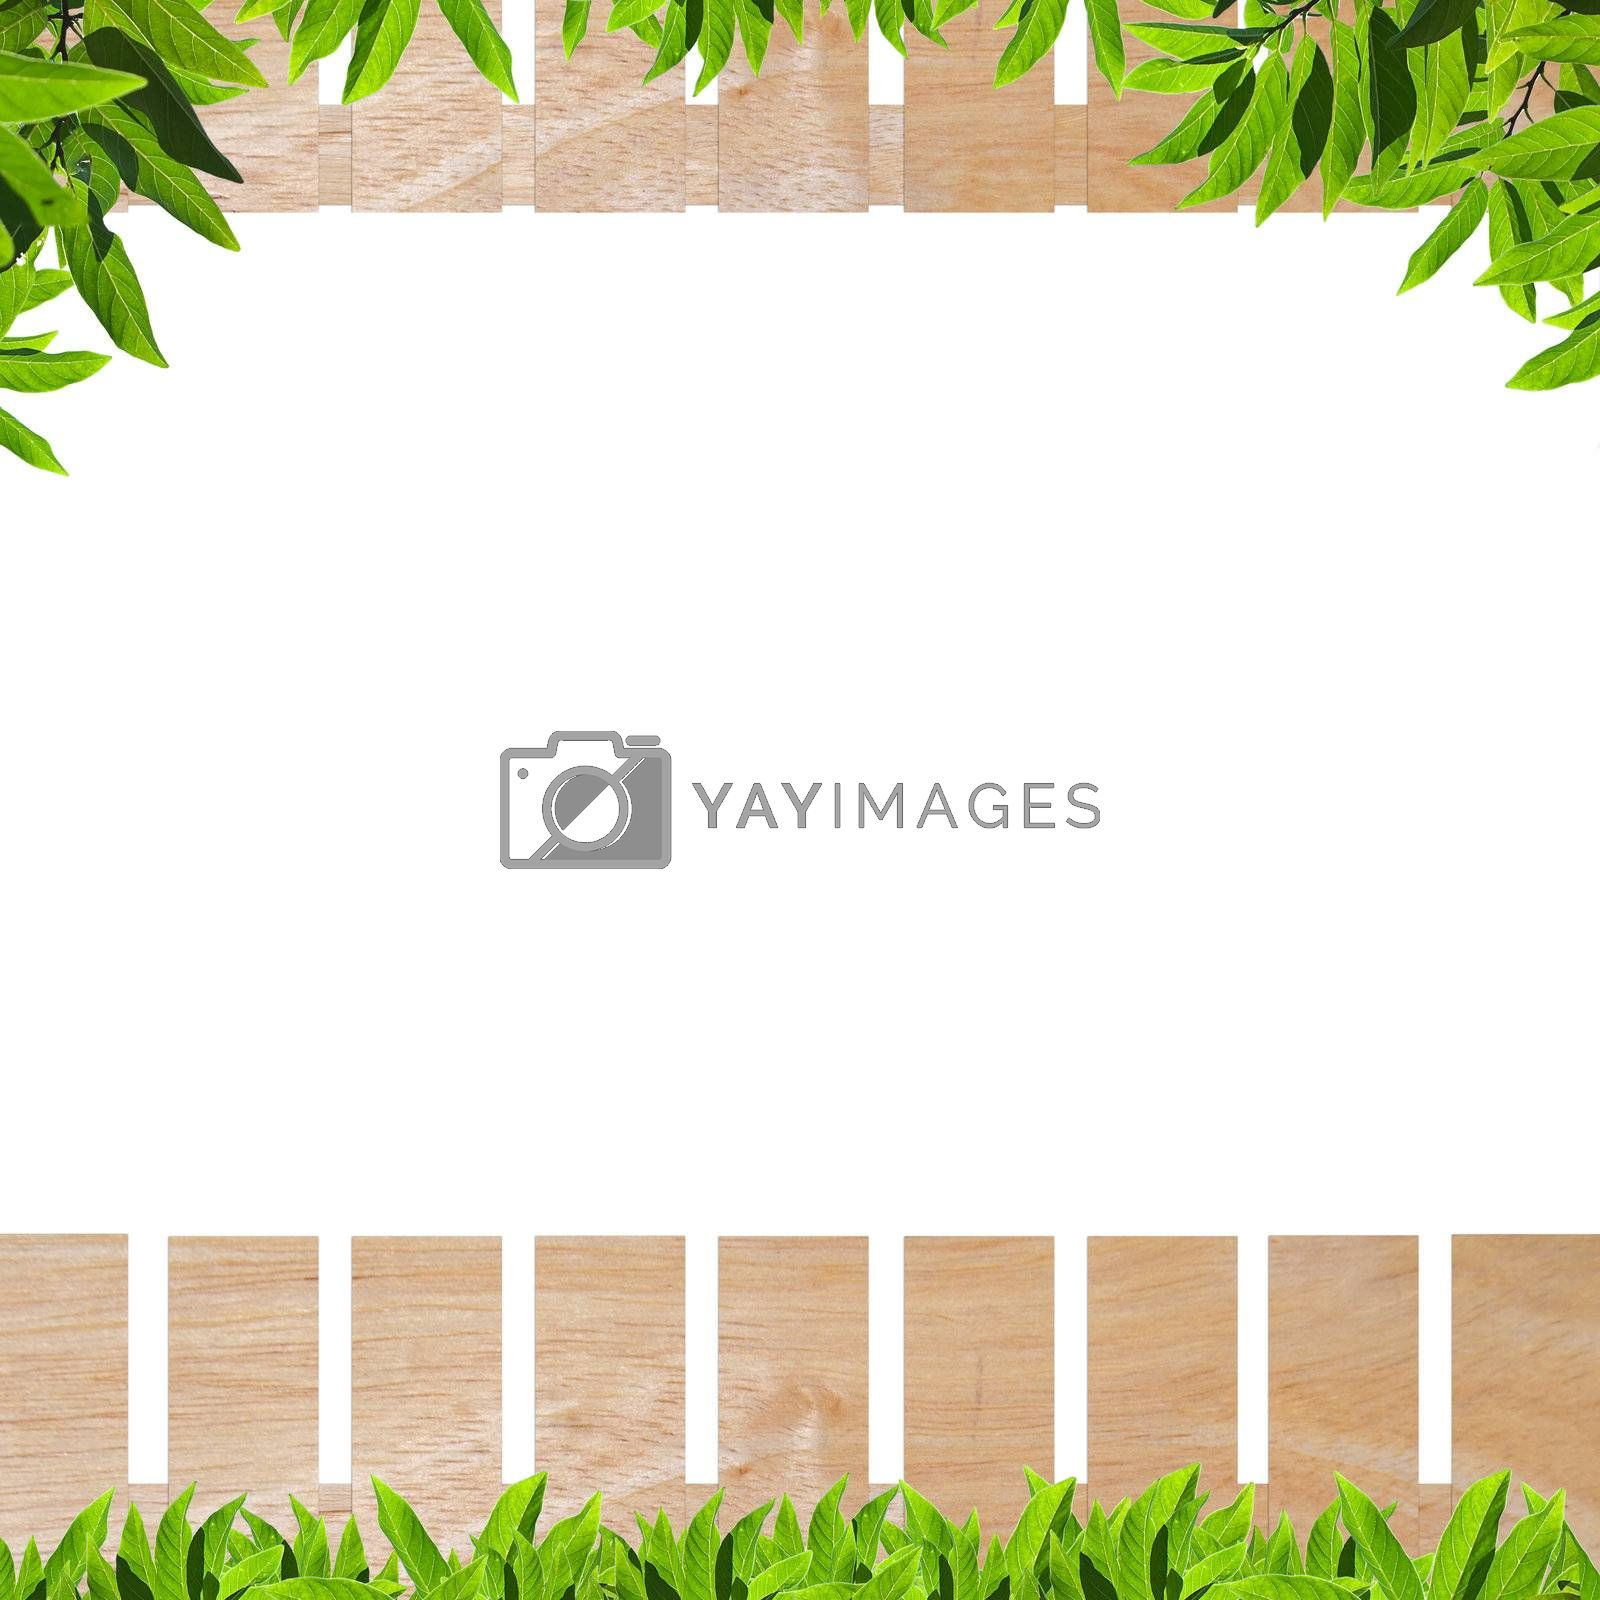 Wooden fence with green leaf isolate on white